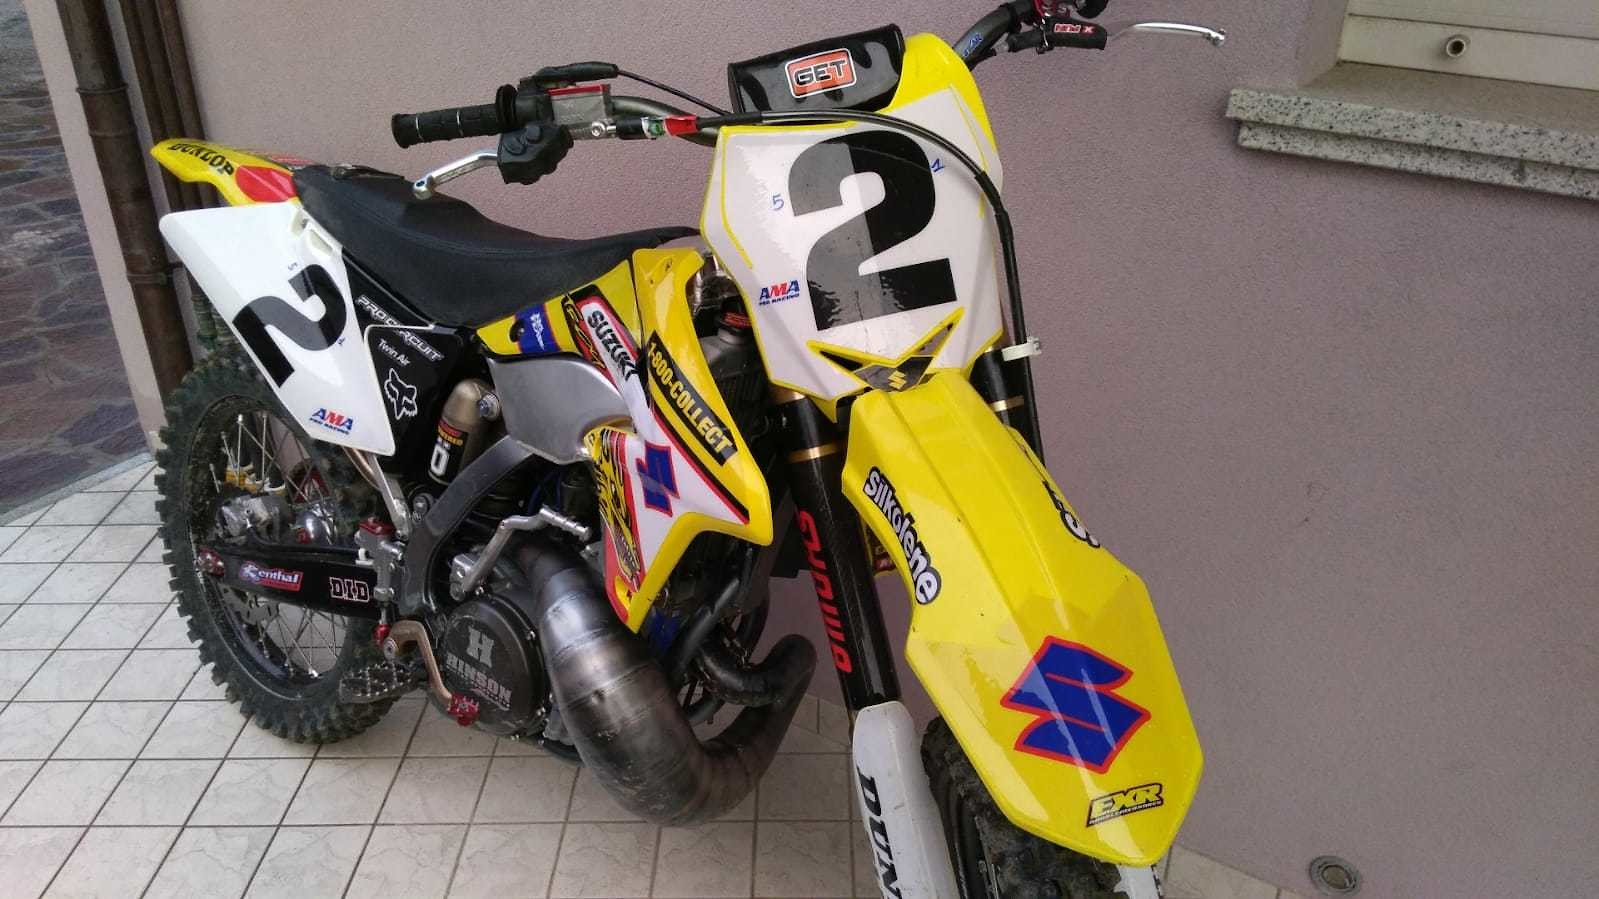 35f771a7-cb62-4405-a127-c3498b626327 - effettoxtremo - Motocross Pictures - Vital MX